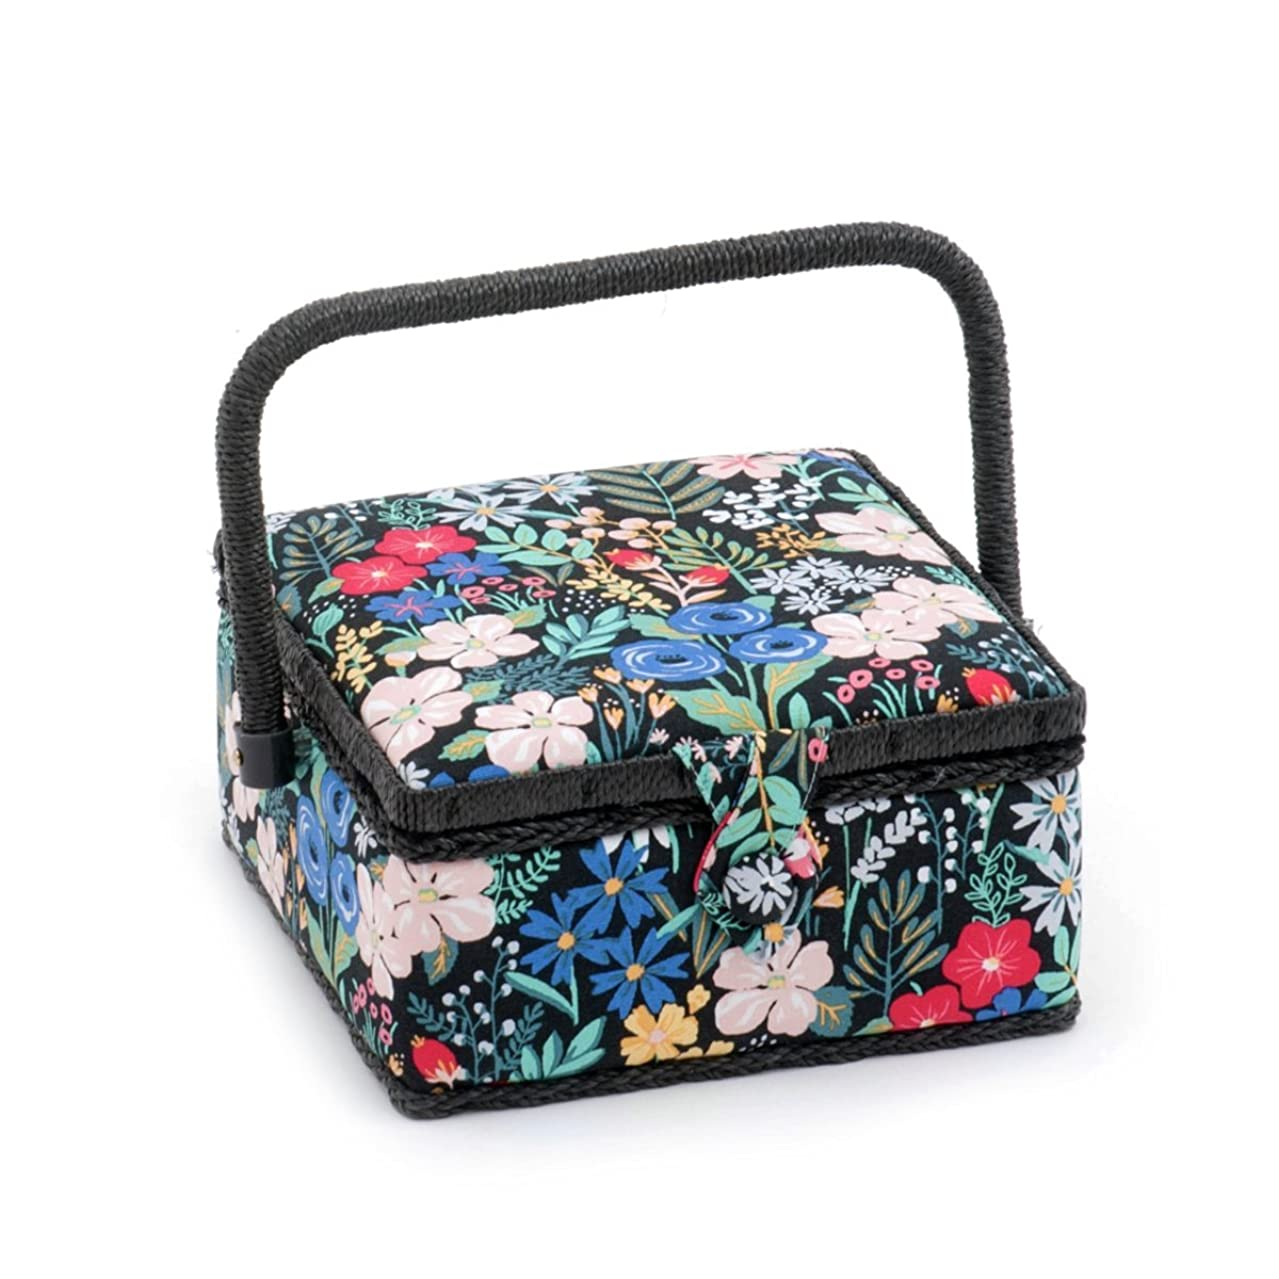 Hobby Gift 'Summertime' Small Square Sewing Box 20 x 20 x 11cm (d/w/h)